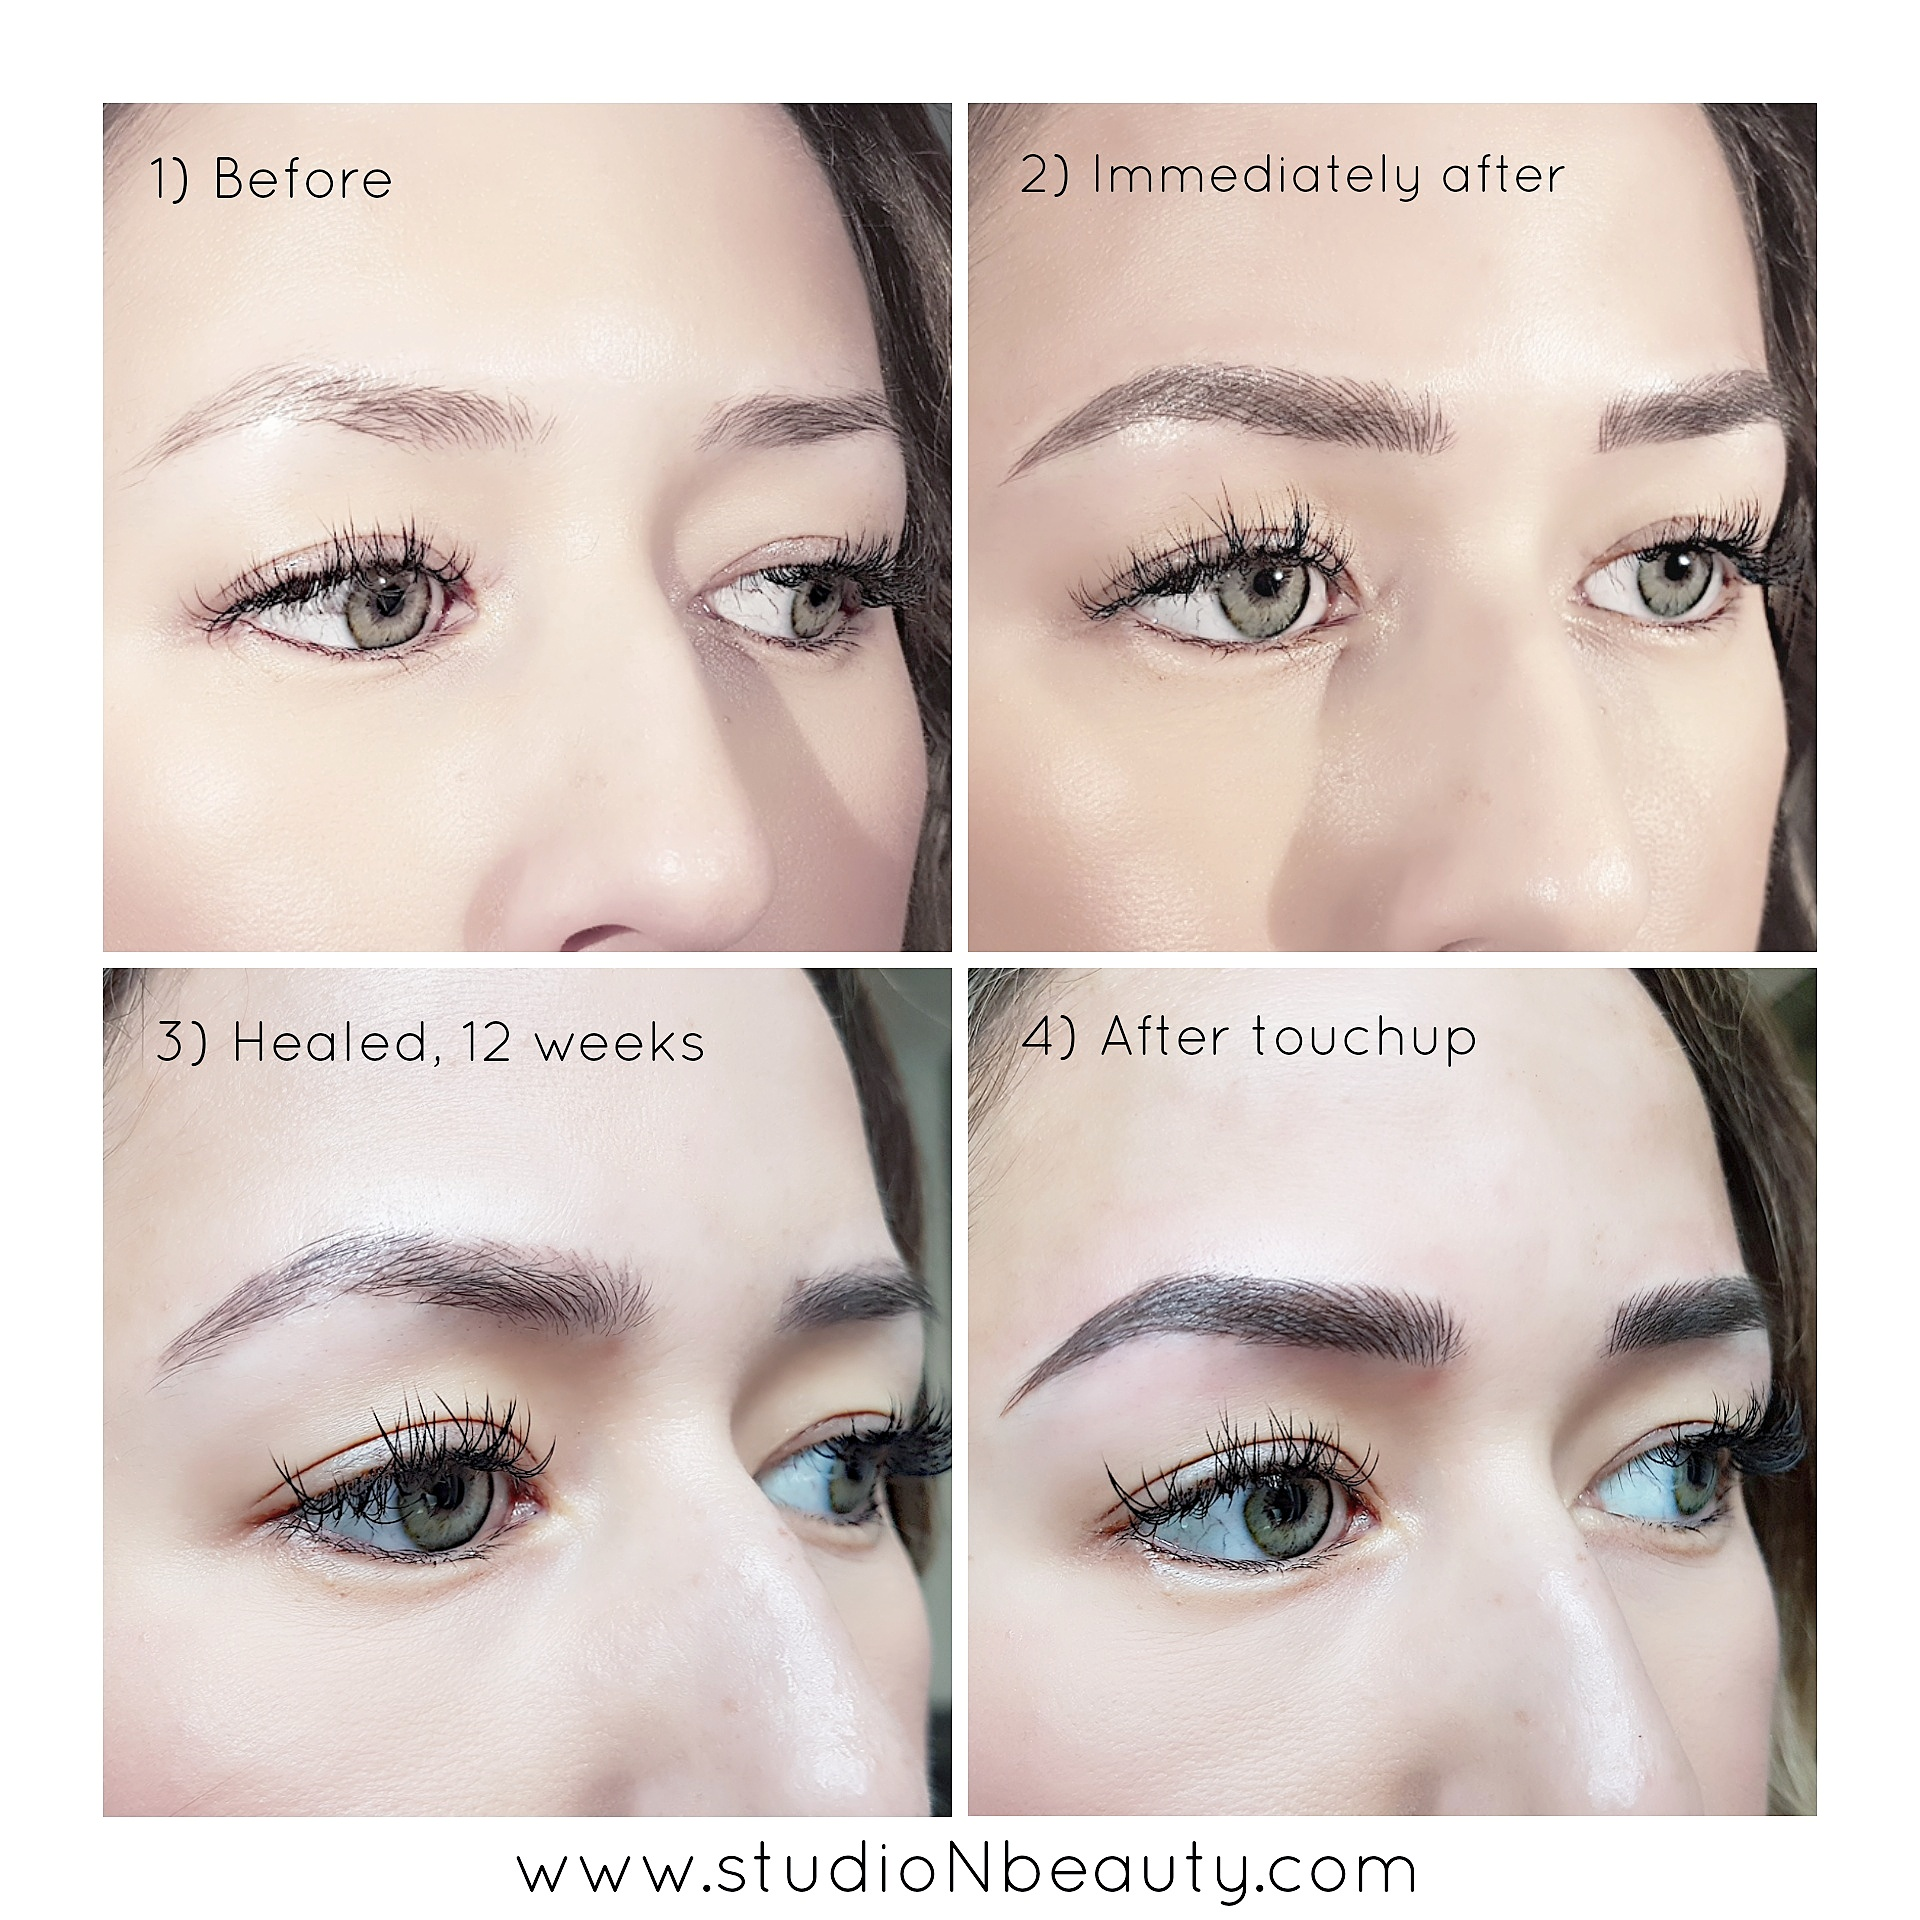 Hello Brows! My Microblading Experience - Over My Styled Body